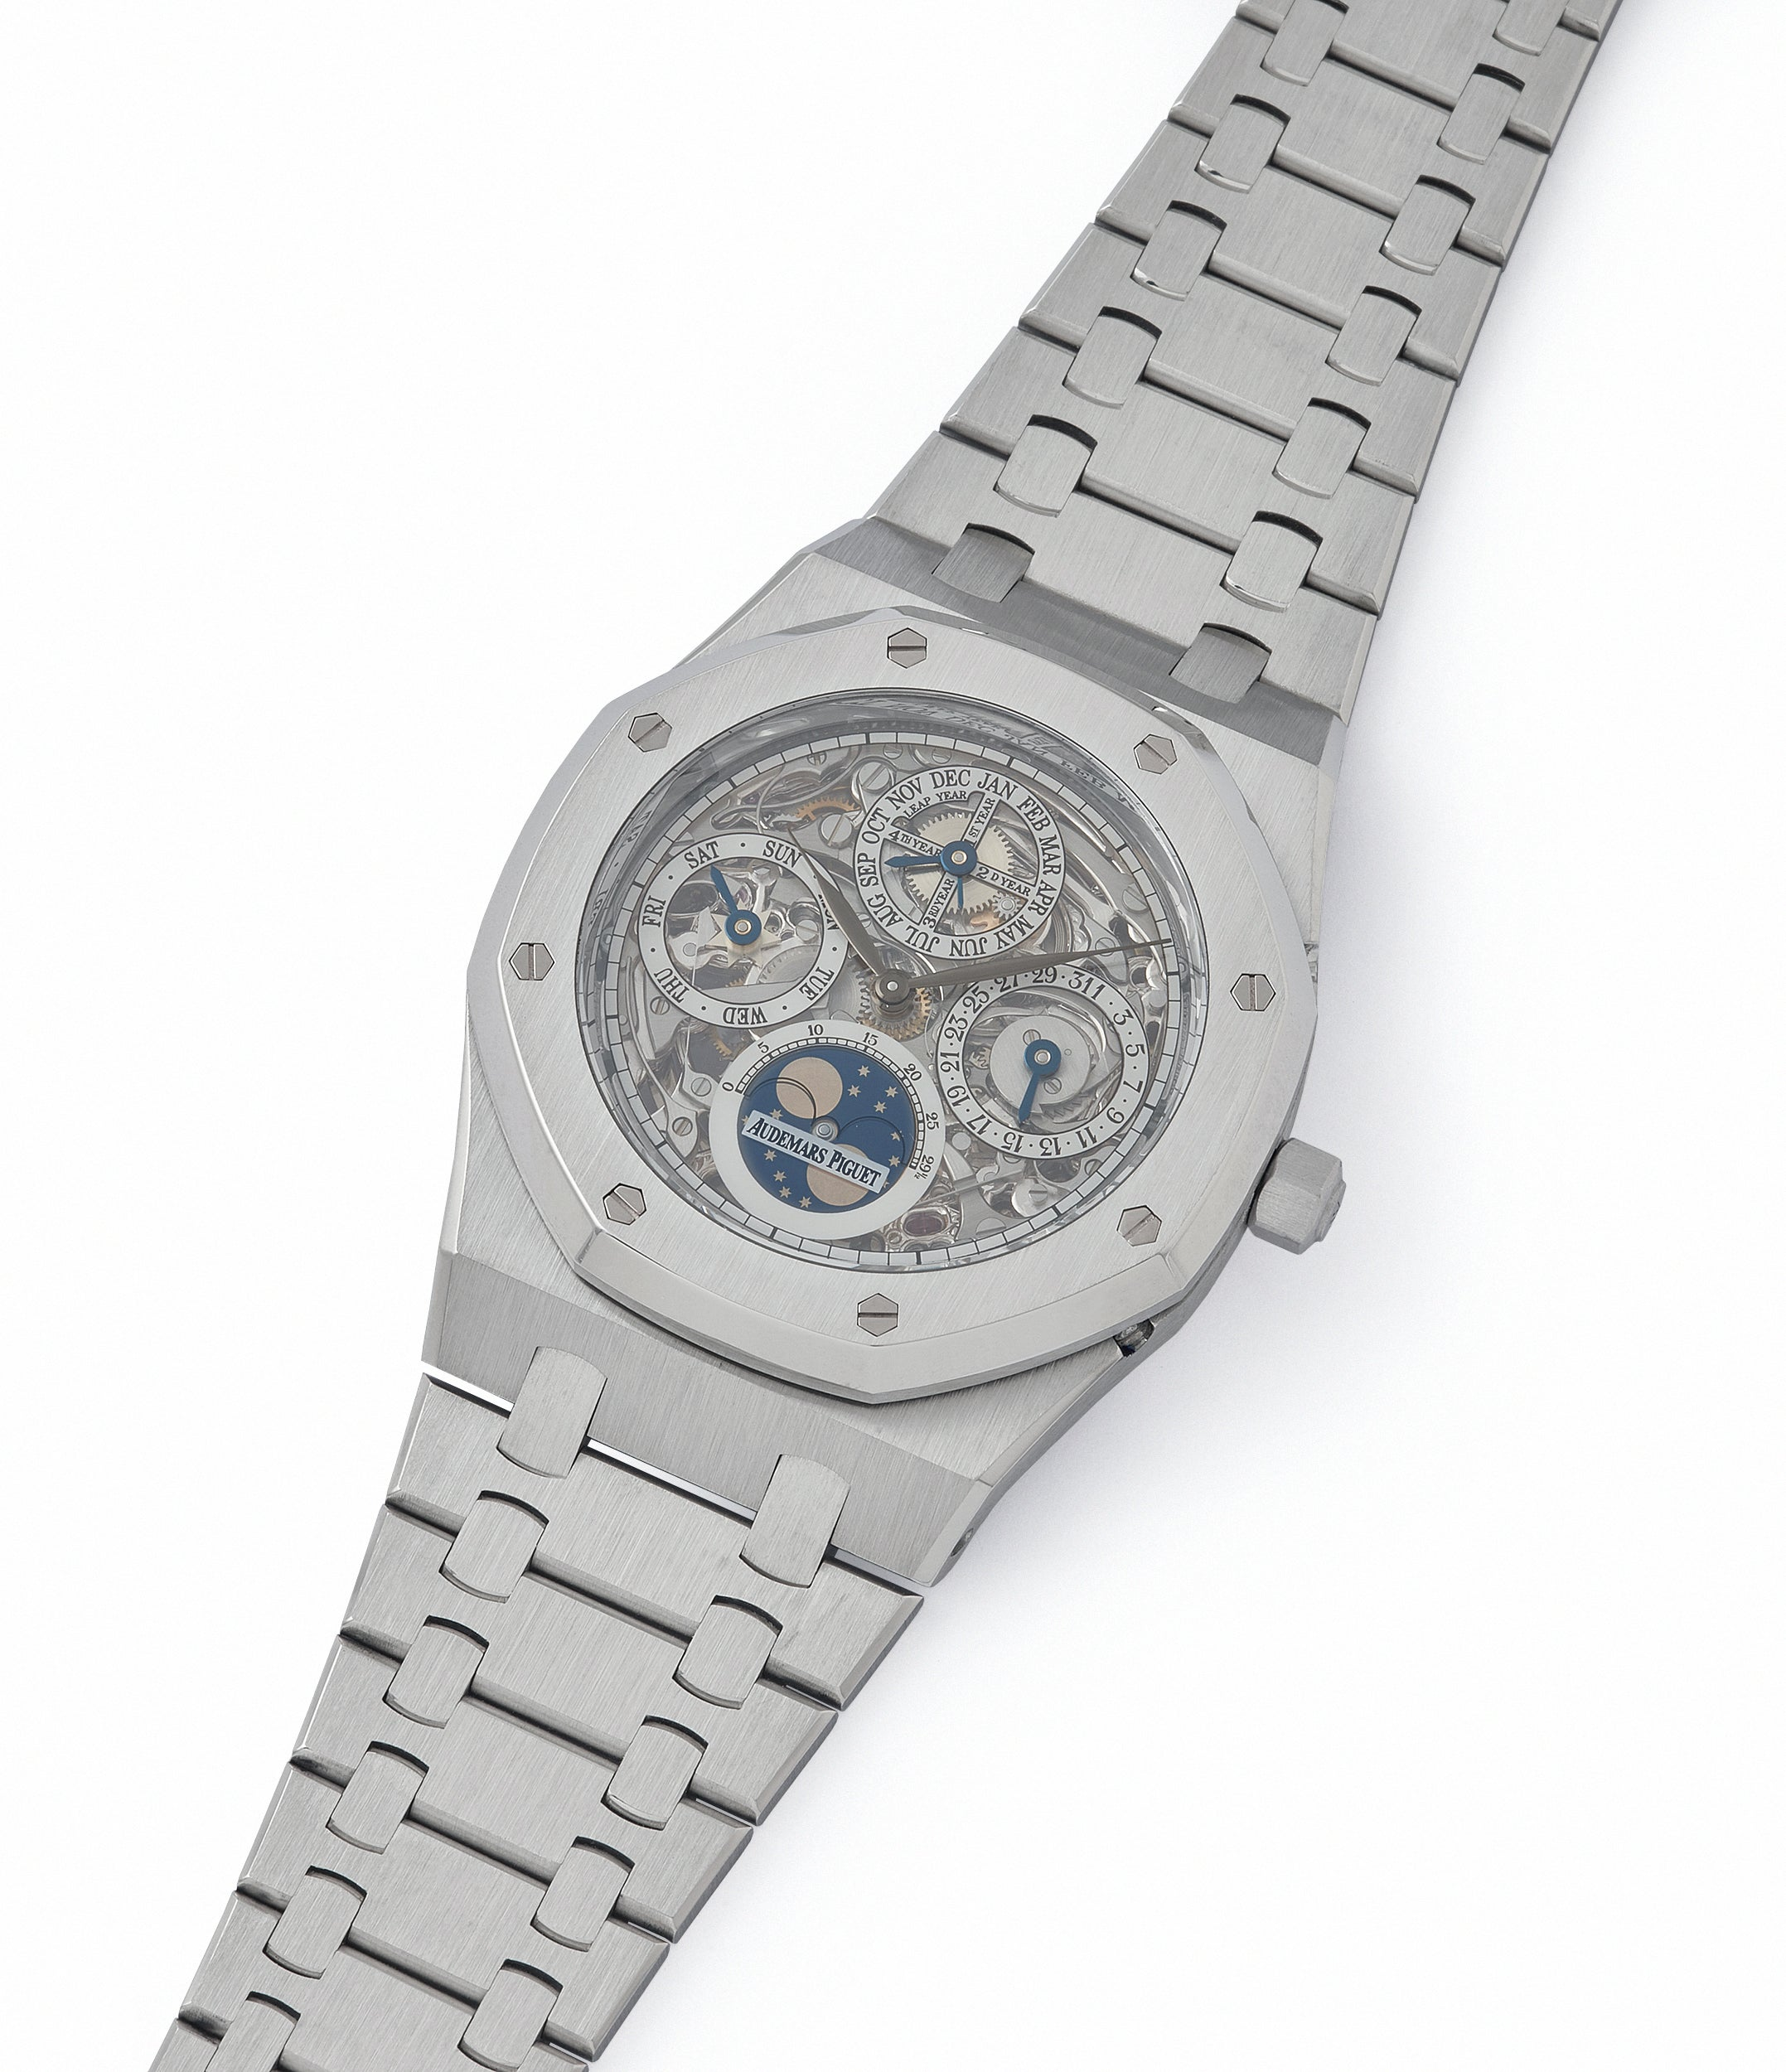 shop Audemars Piguet Royal Oak 25829PT perpetual calendar skeleton dial platinum full set pre-owned watch for sale online at A Collected Man London UK specialist of rare watches